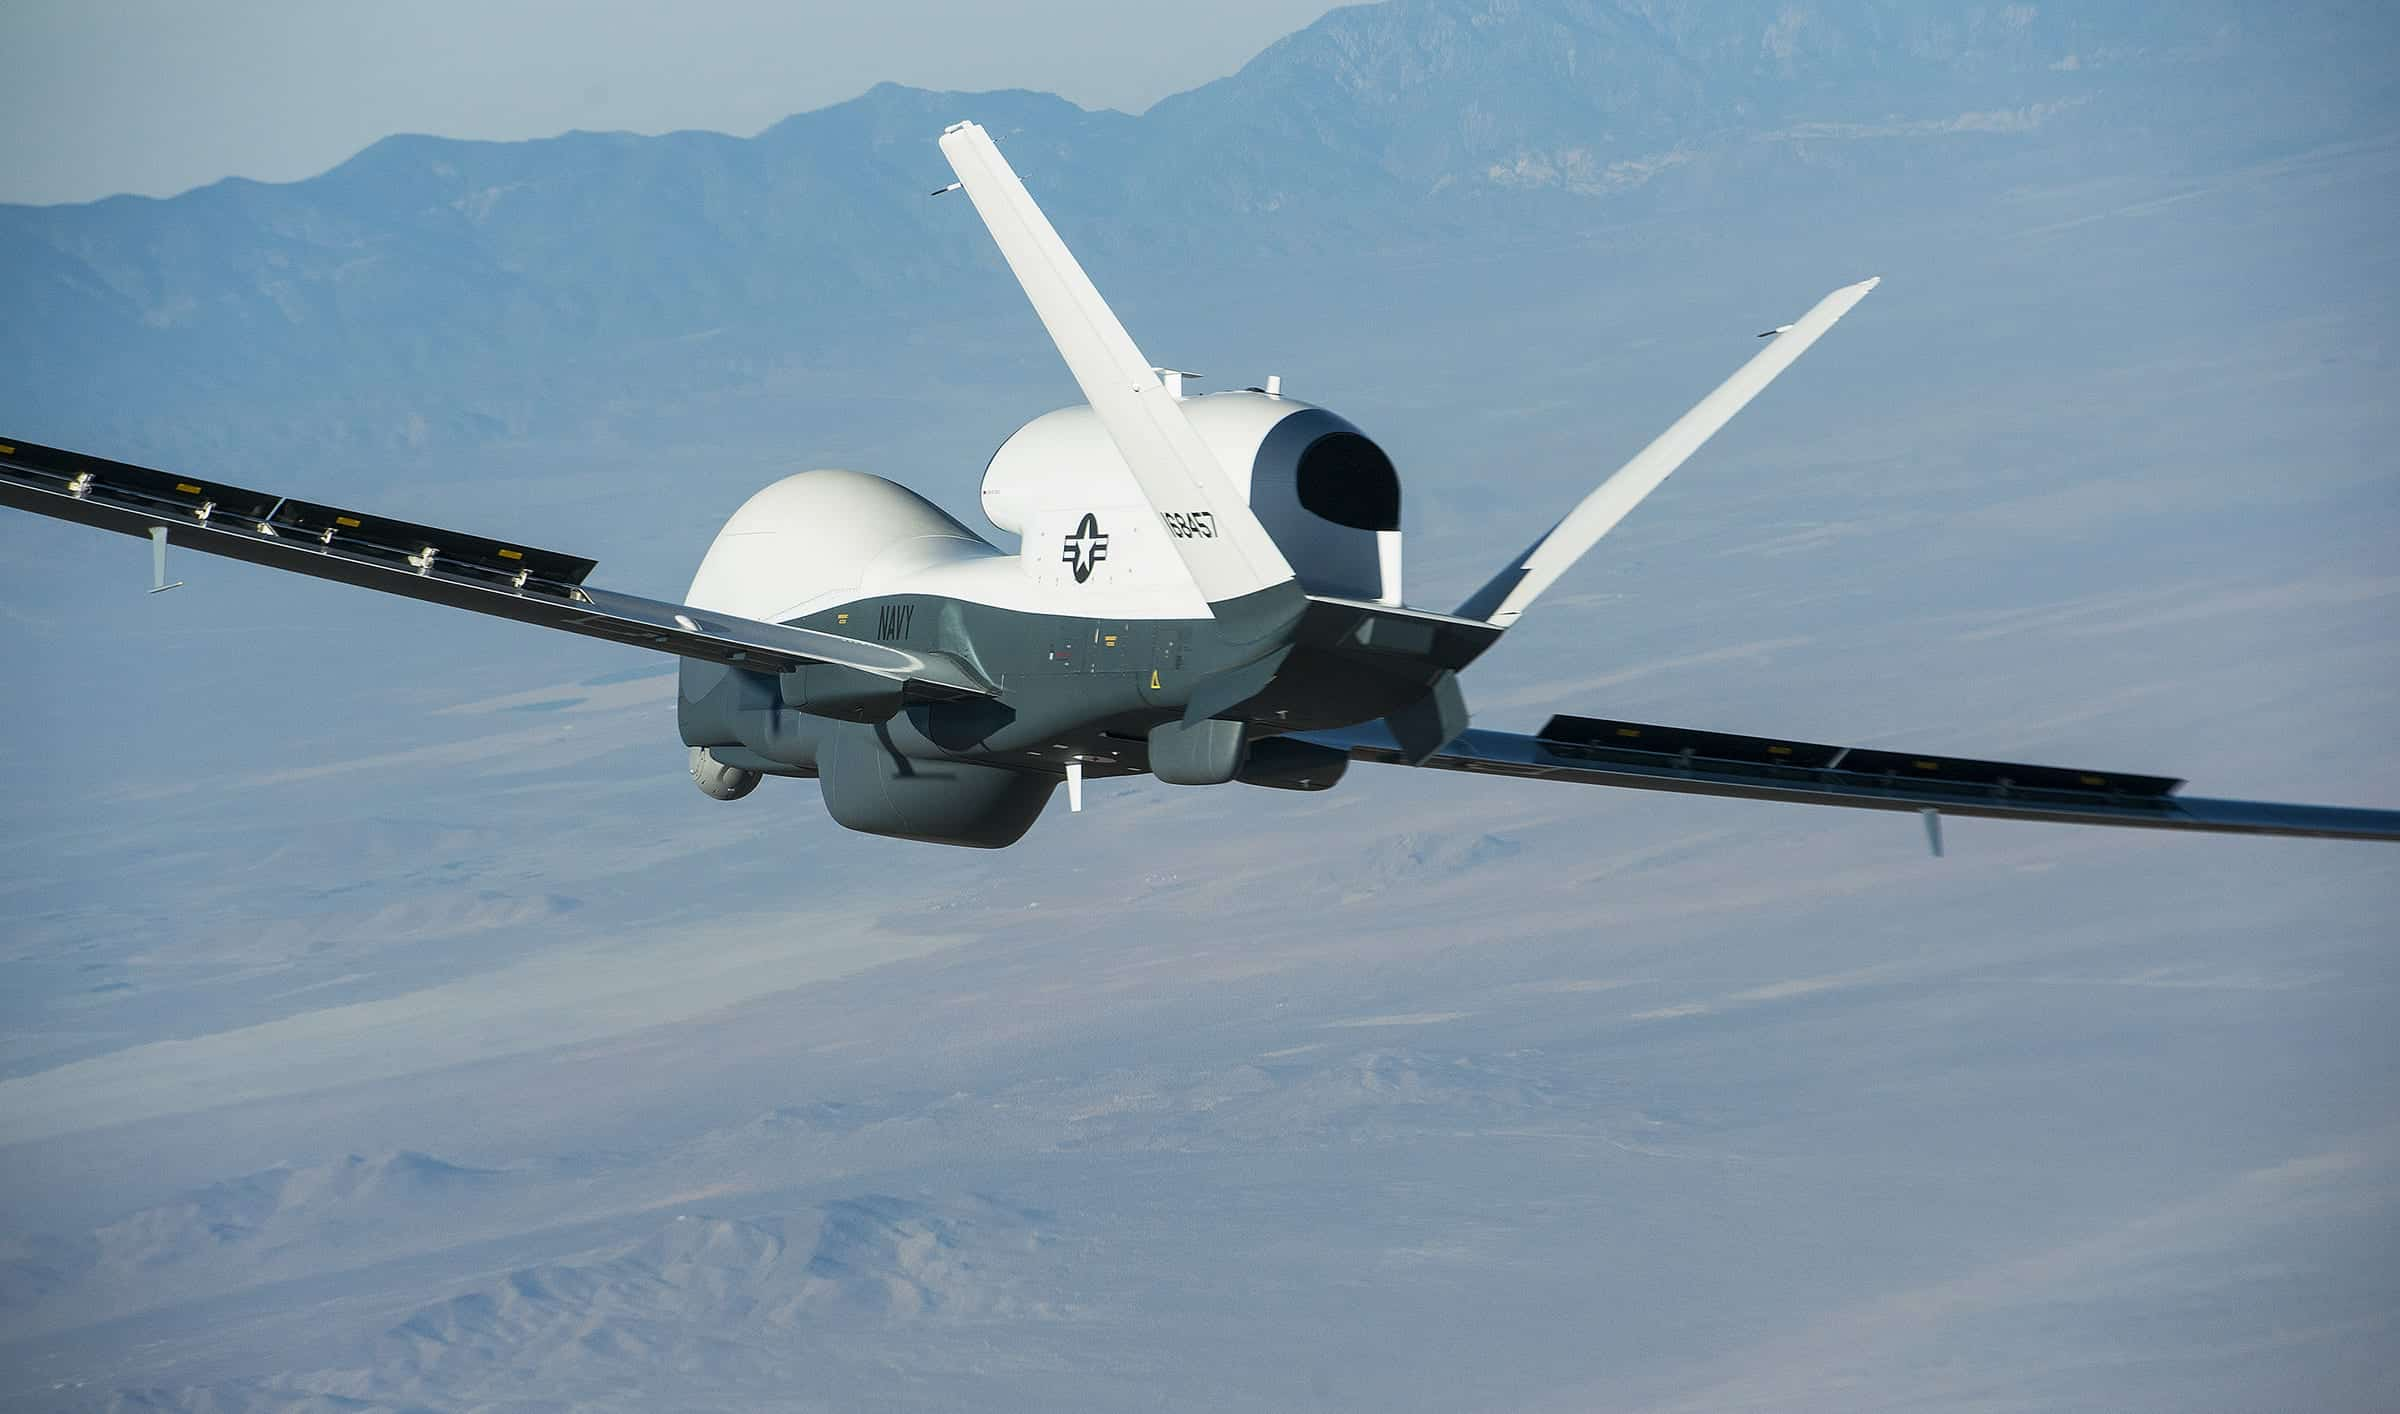 northrop grumman 39 s triton uav completes first flight unmanned systems technology. Black Bedroom Furniture Sets. Home Design Ideas